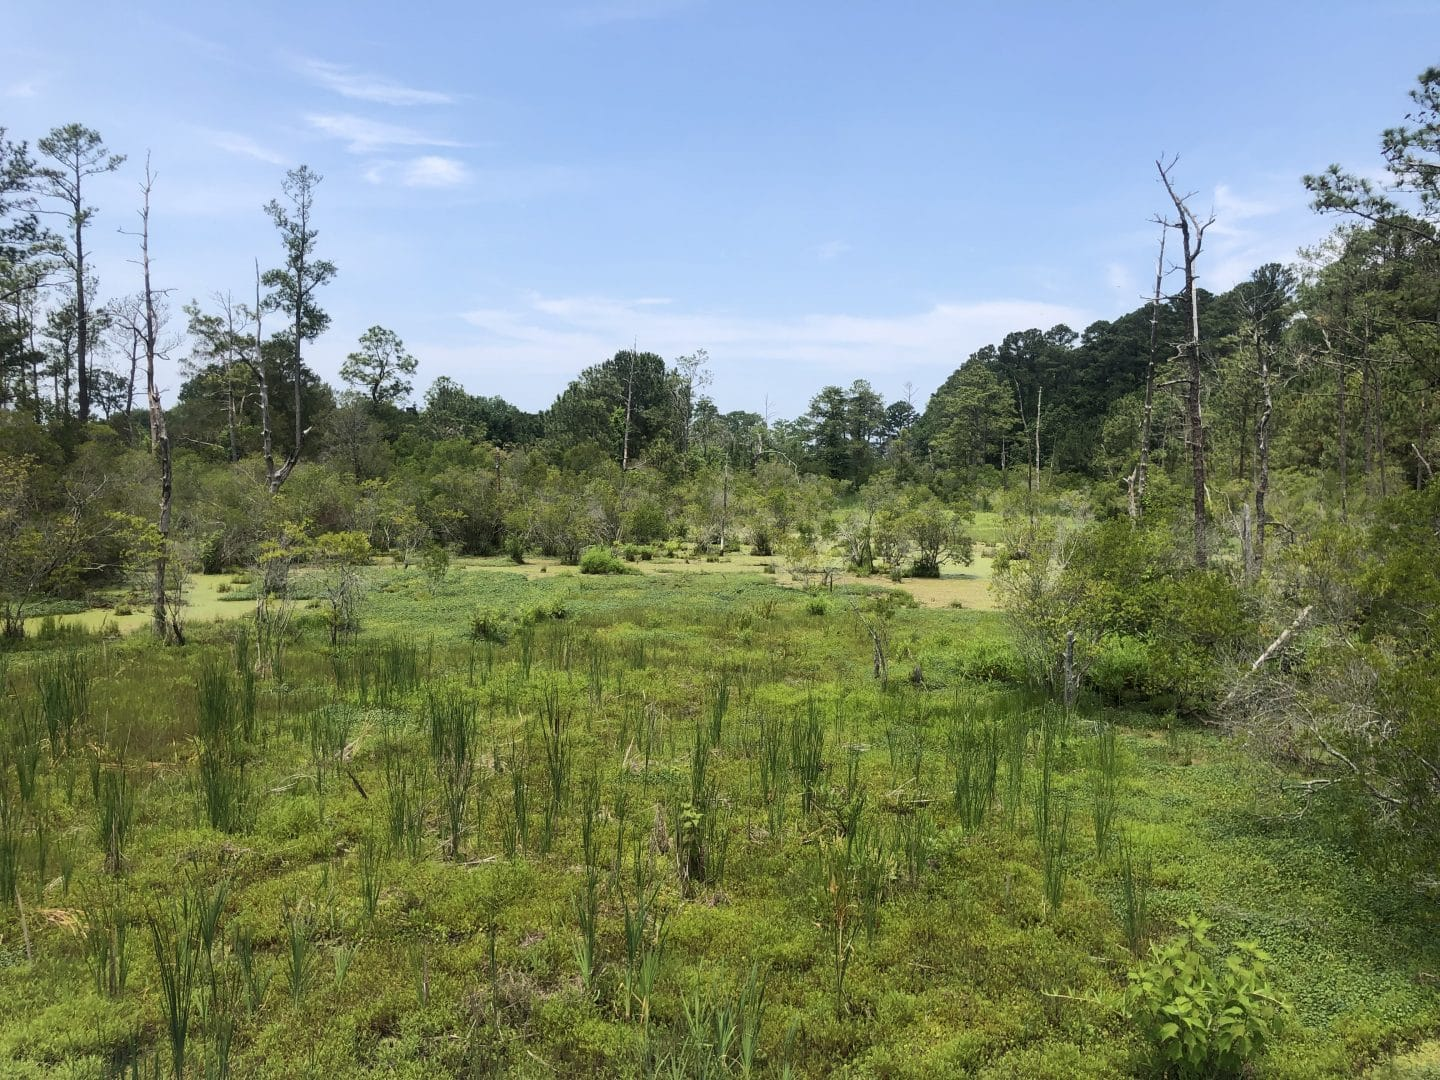 swamp at historic Jamestown in Virginia